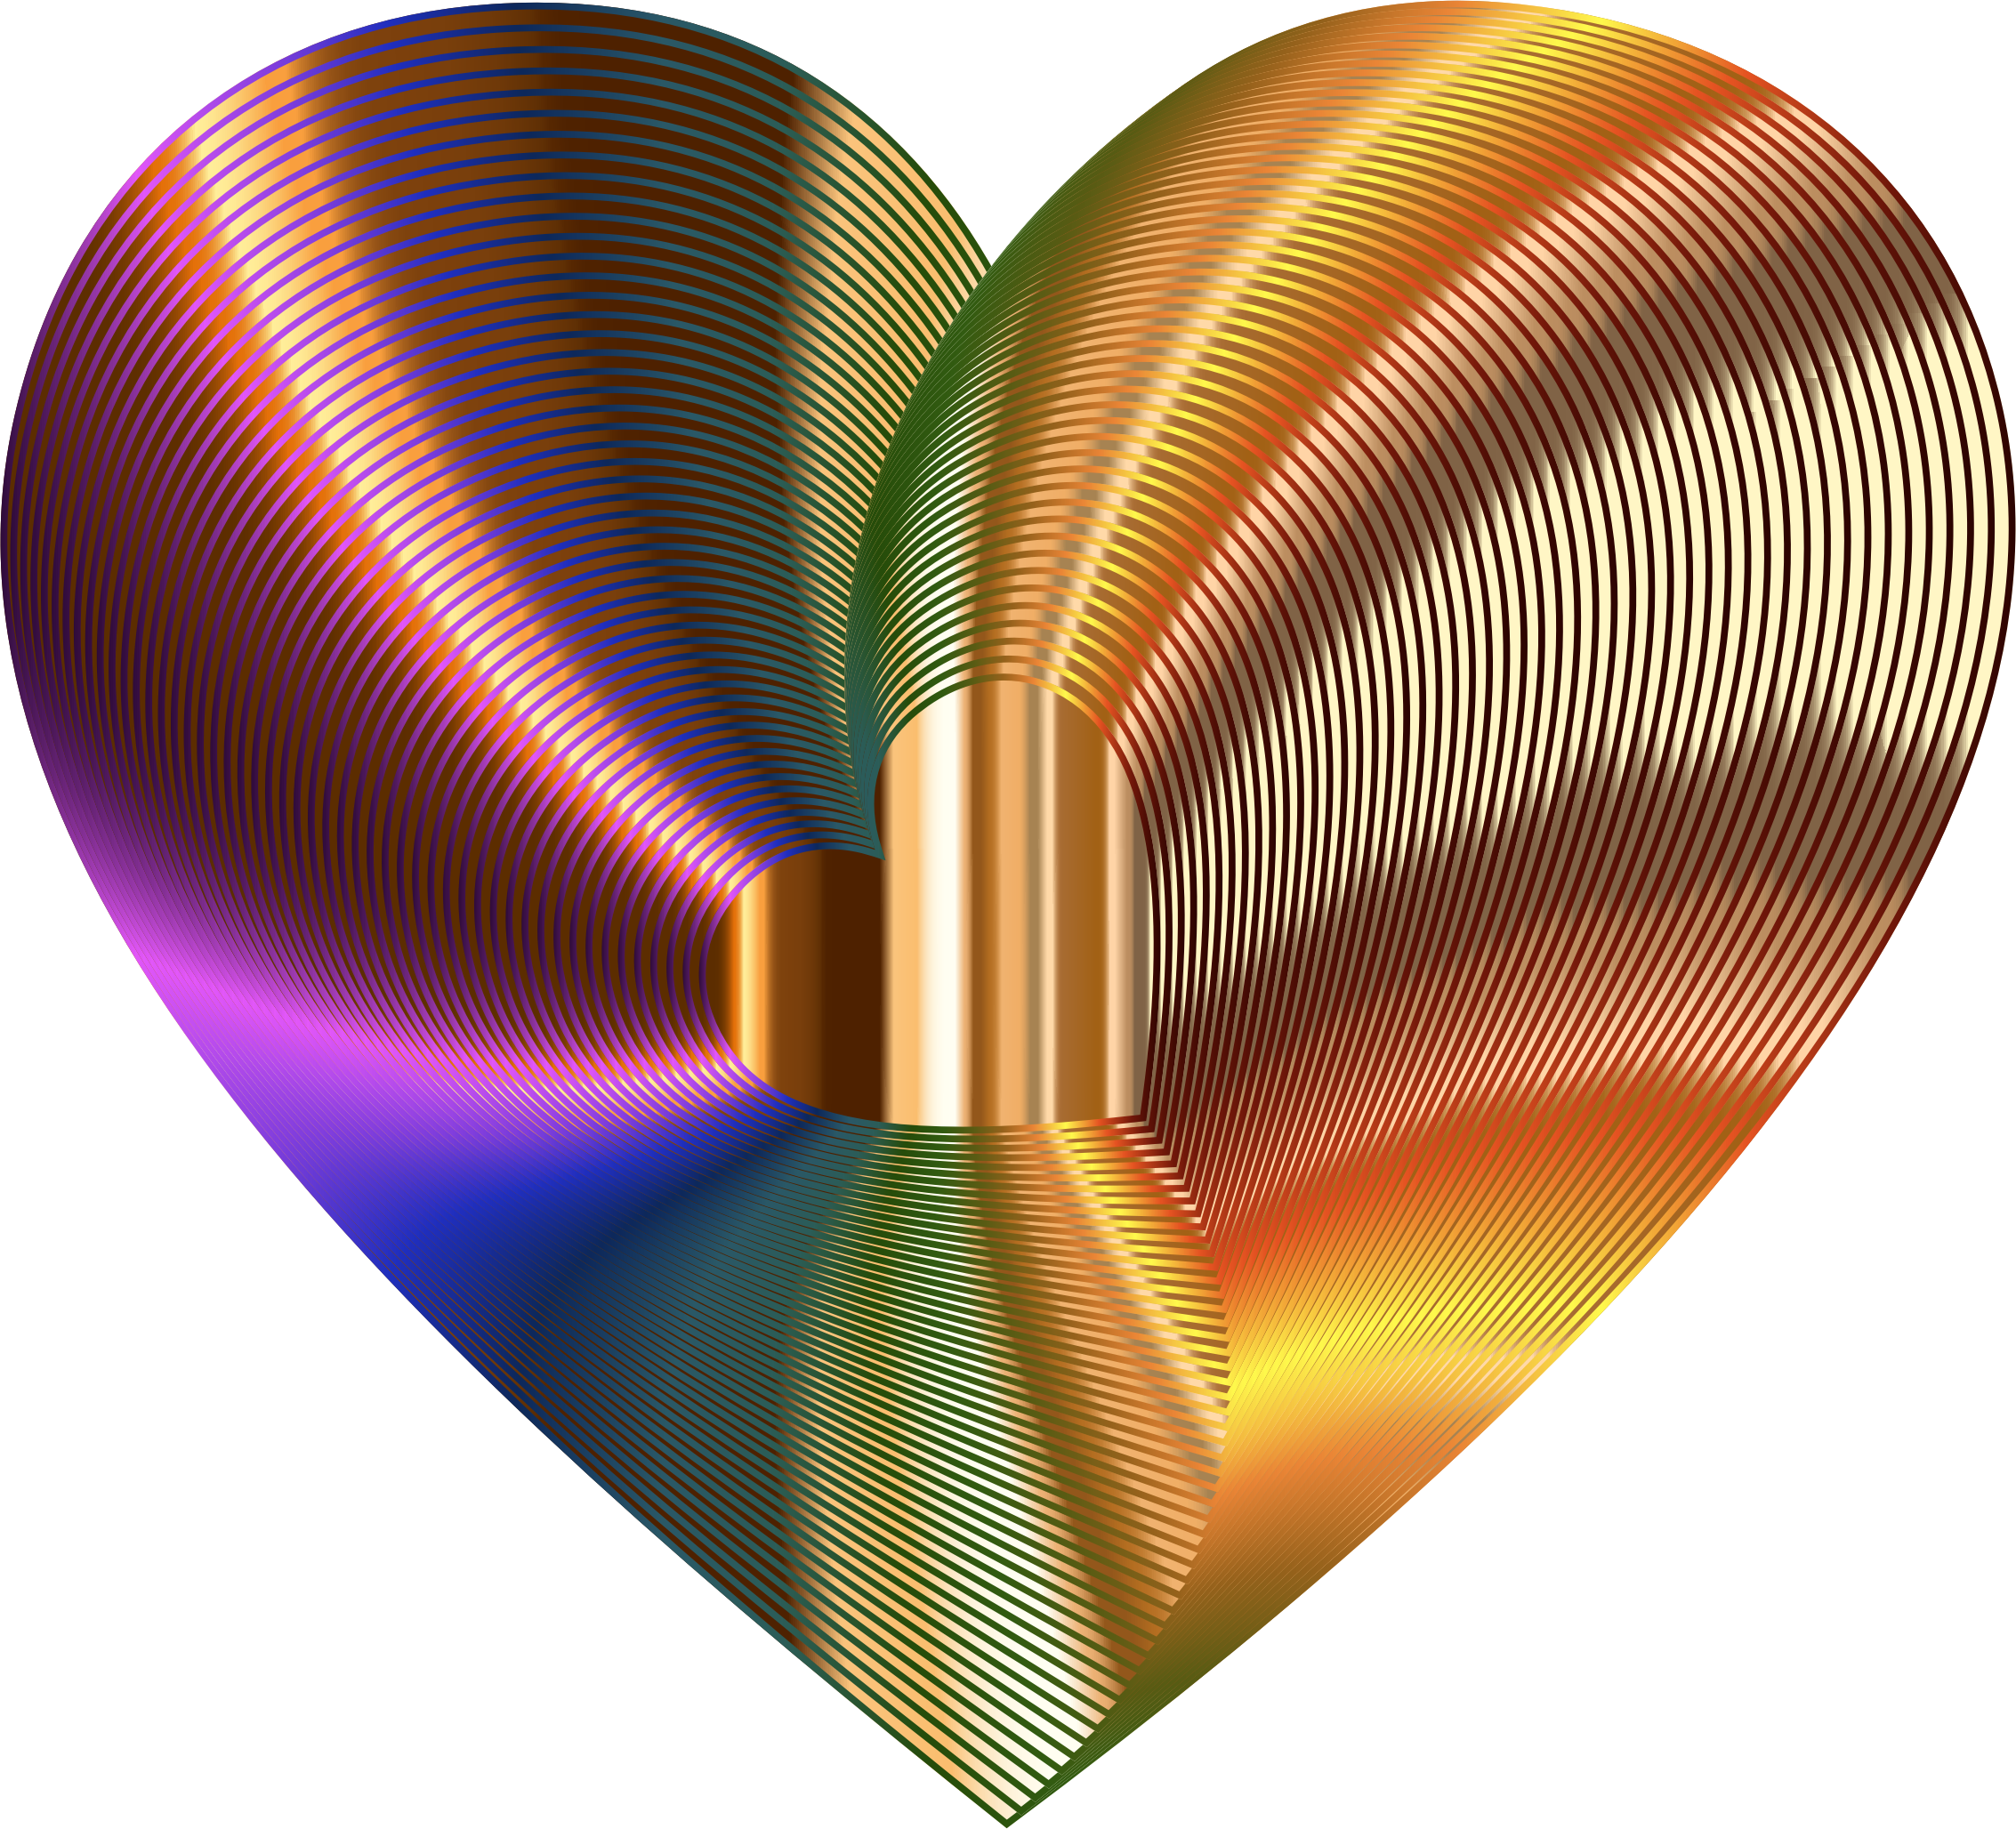 Golden Heart Of The Rainbow 2 by GDJ